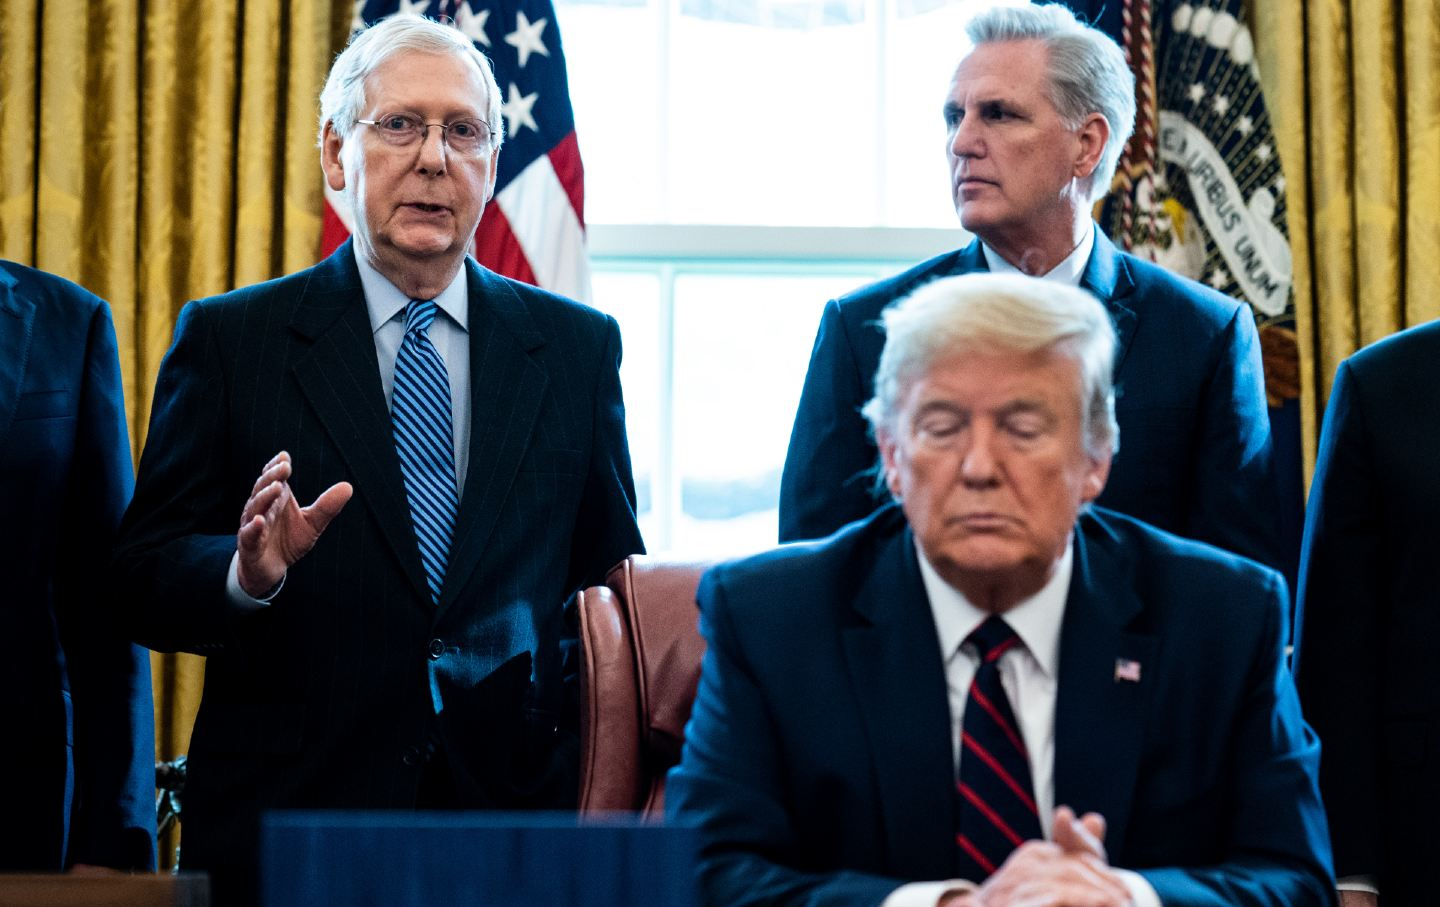 Donald Trump sits at a desk with Mitch McConnell and Kevin McCarthy standing behind him